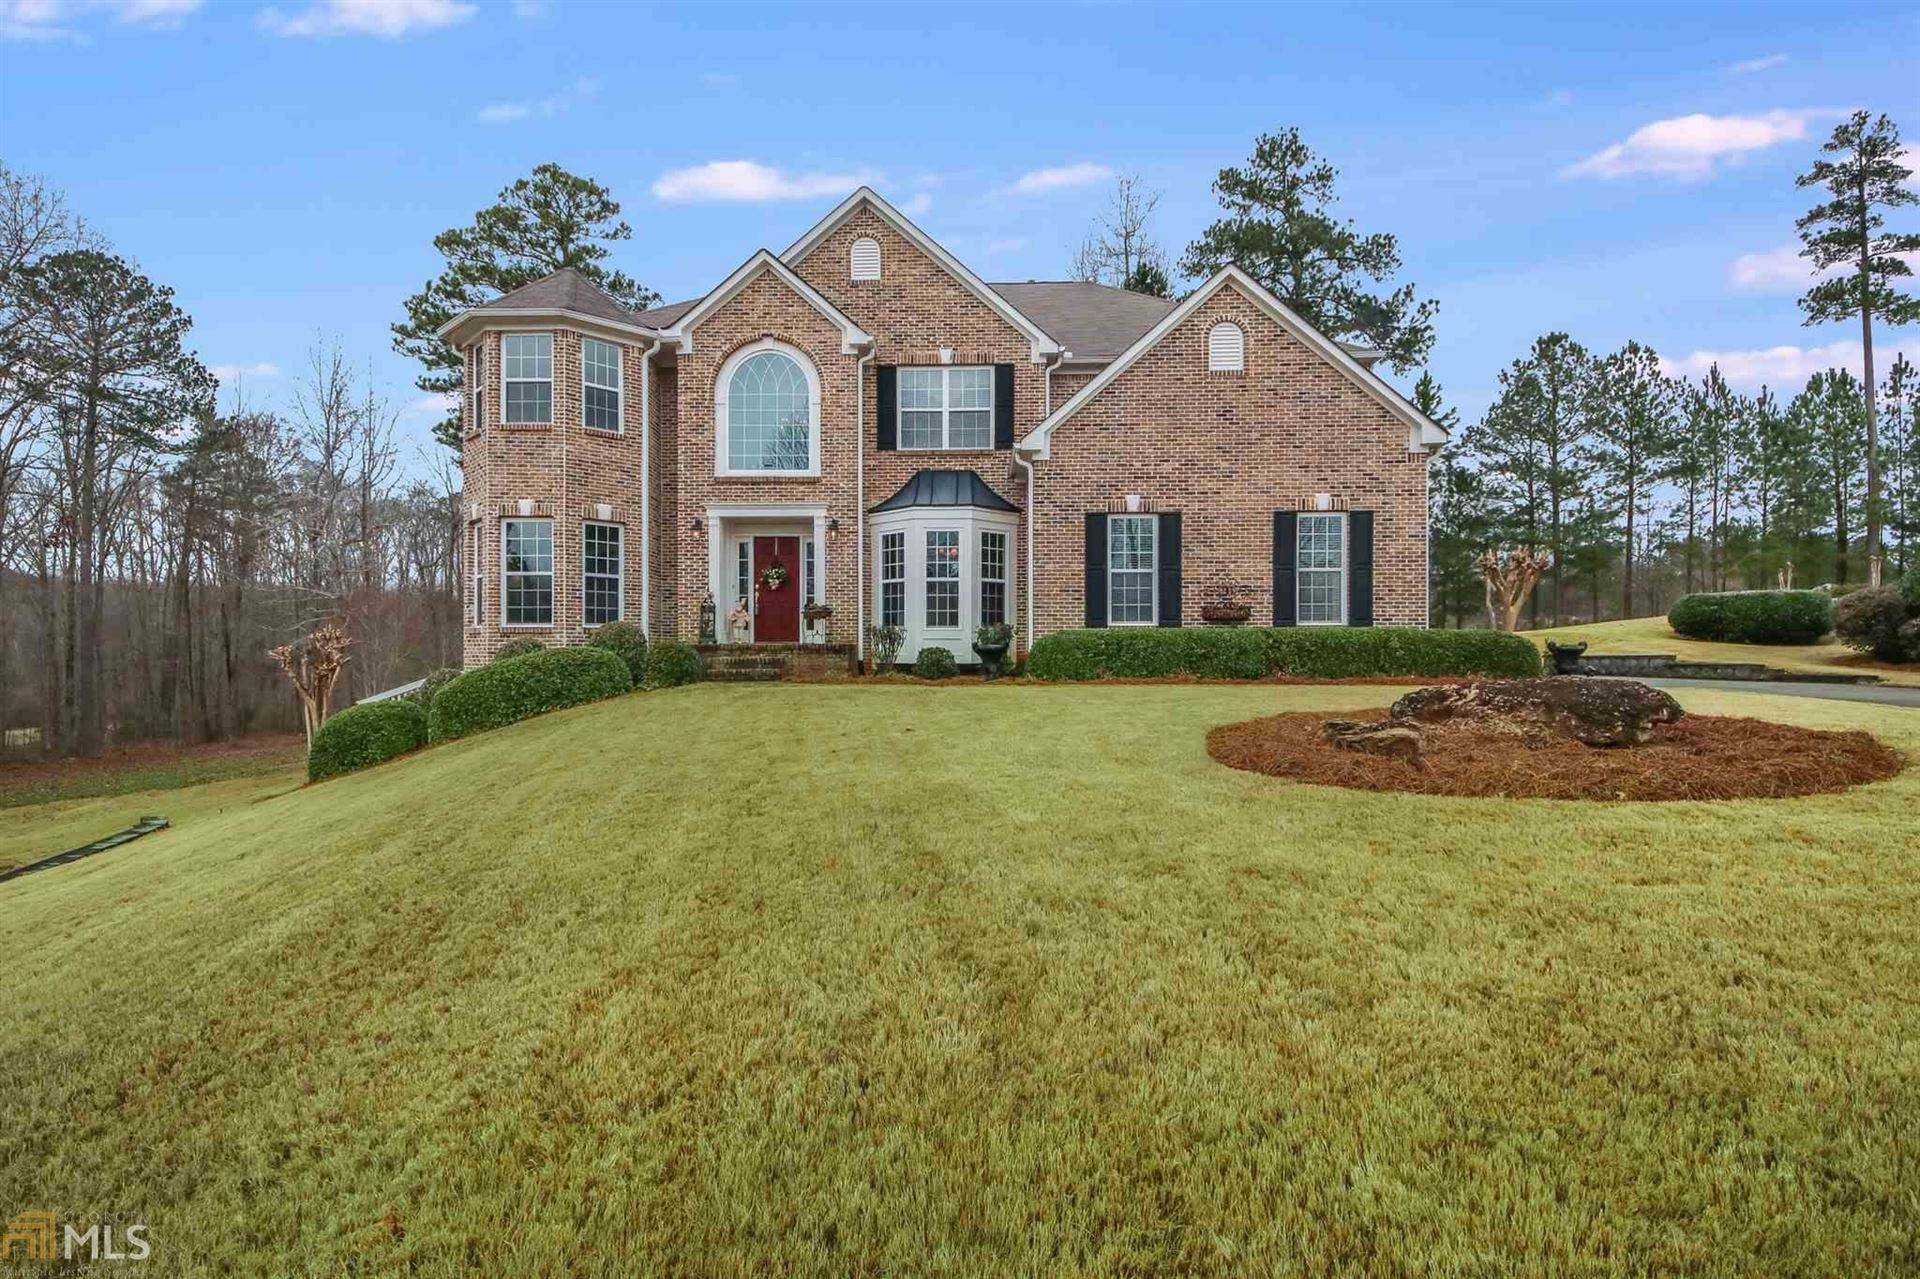 Photo of 4355 Lakeside Blvd, Monroe, GA 30655 (MLS # 8935918)